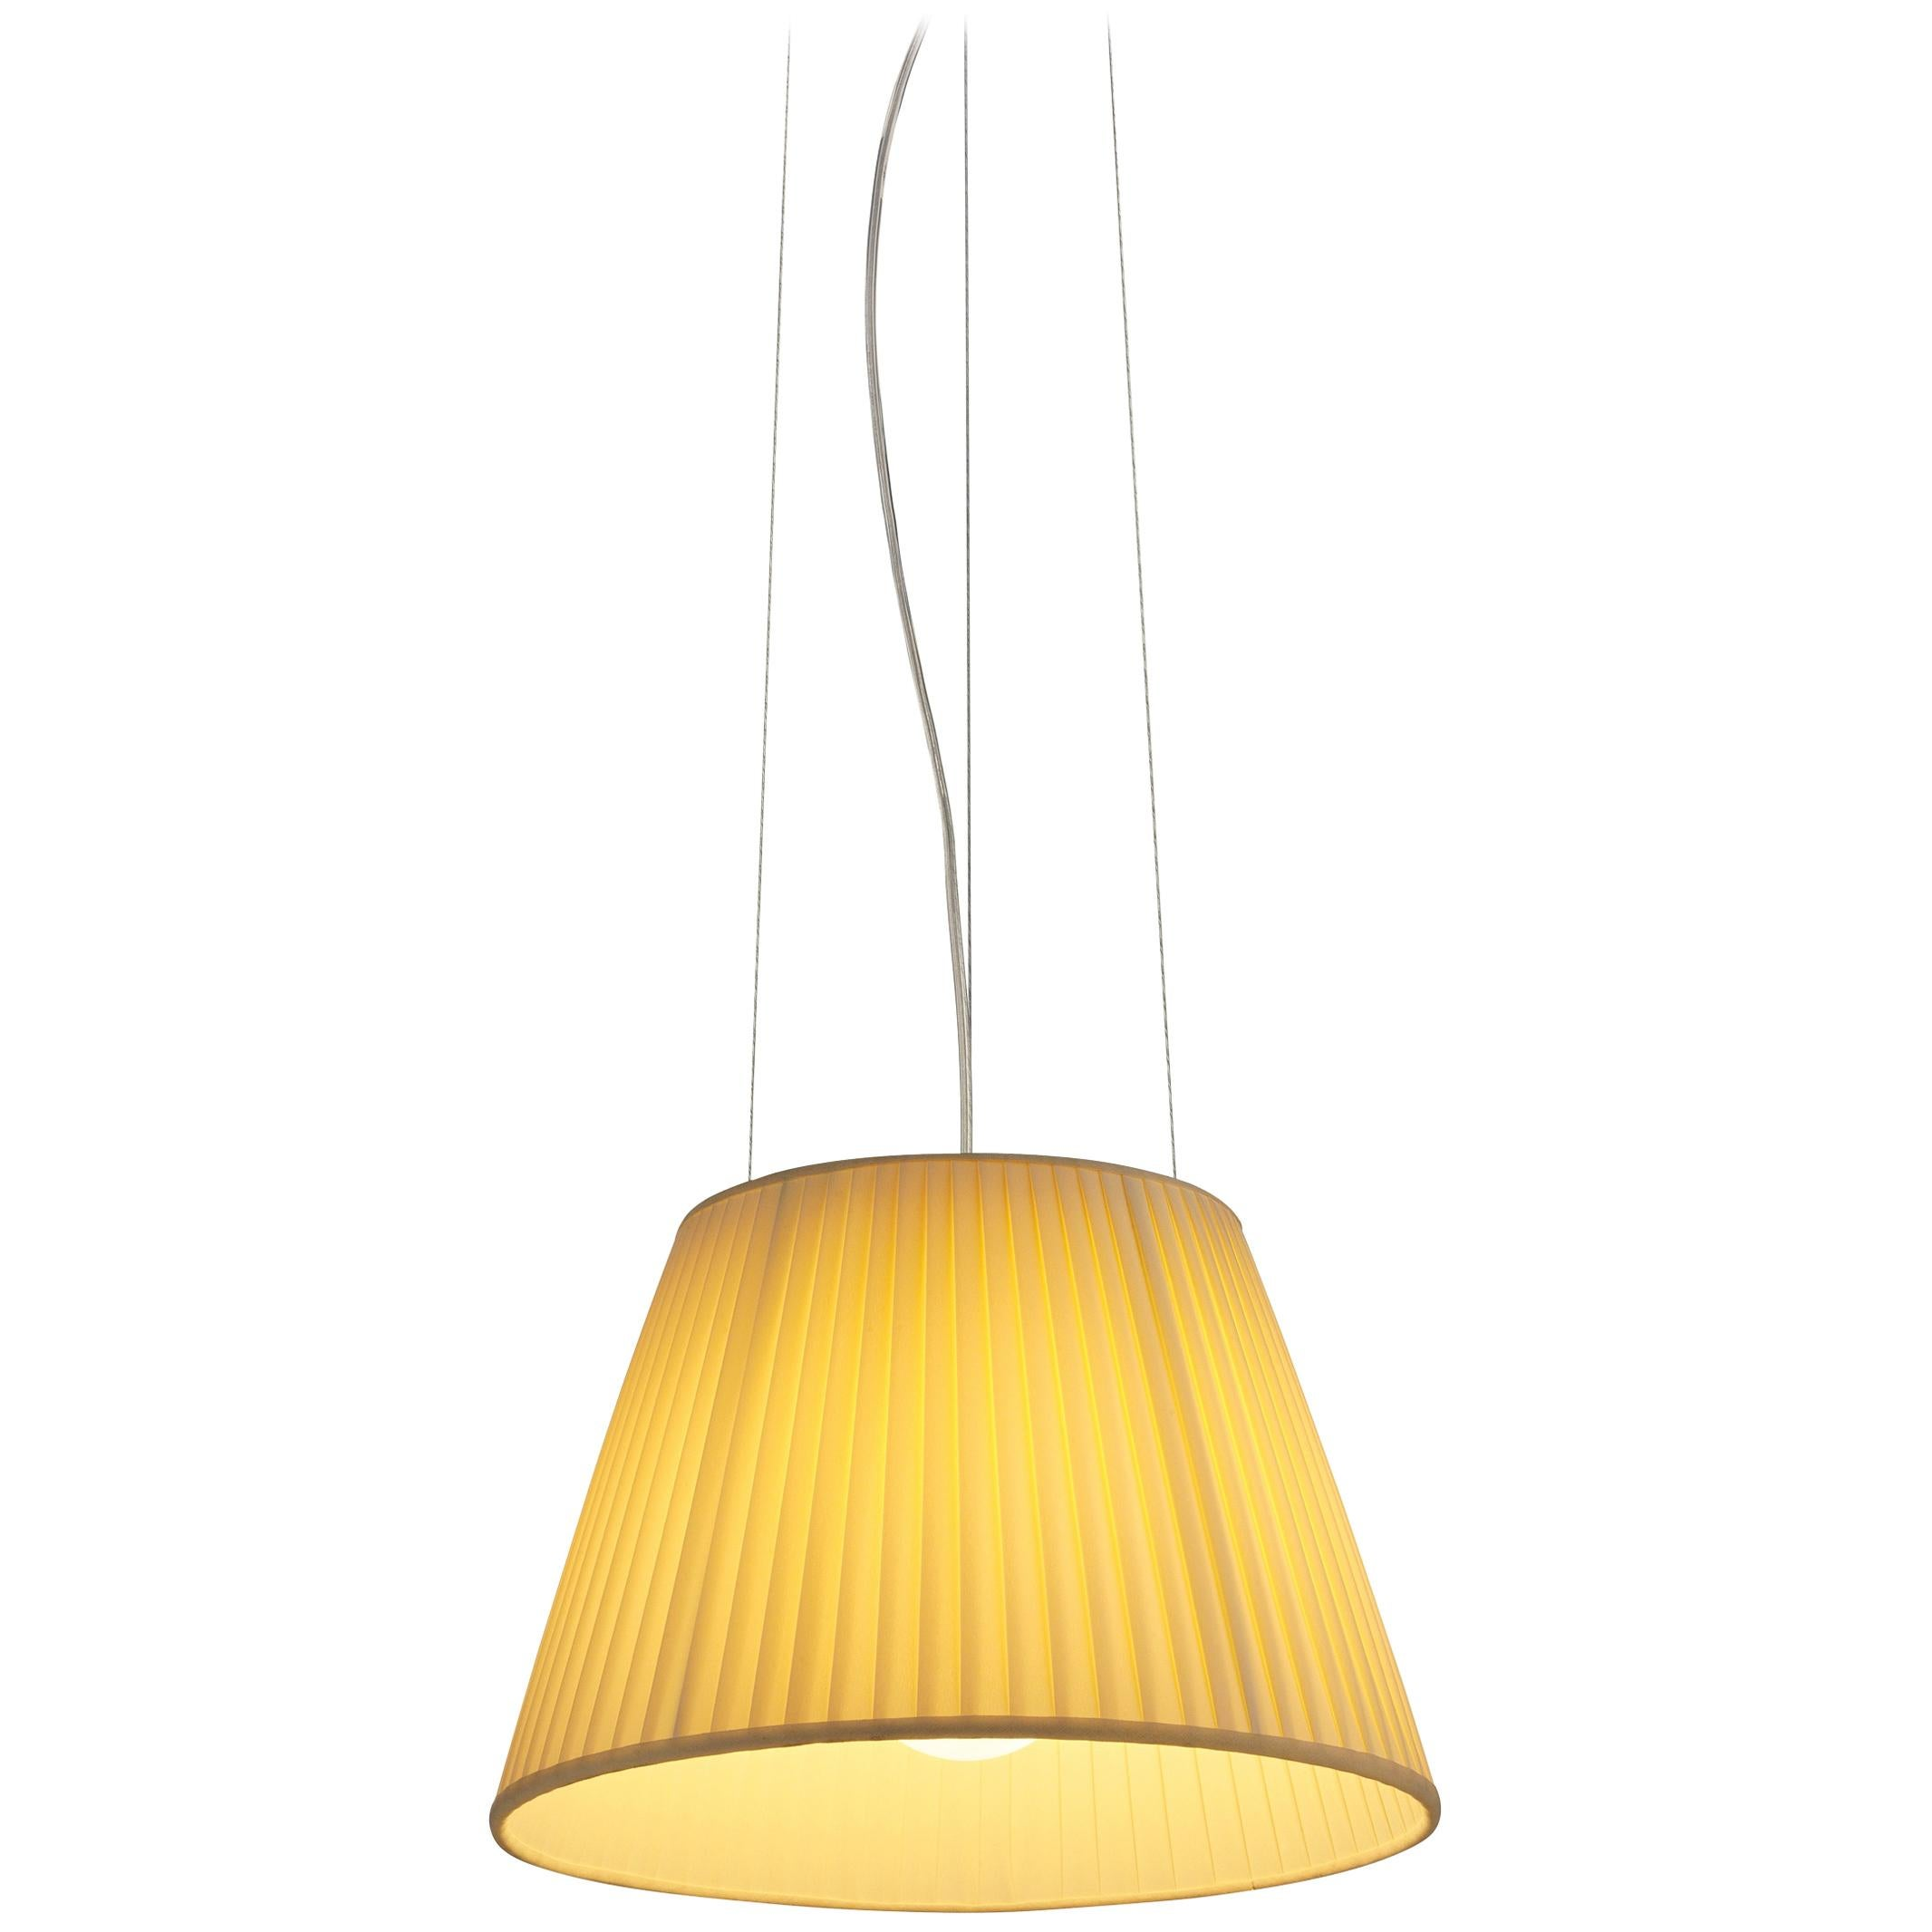 Flos Romeo Soft S1 Halogen Pendant Light By Philippe Starck For Sale At 1stdibs